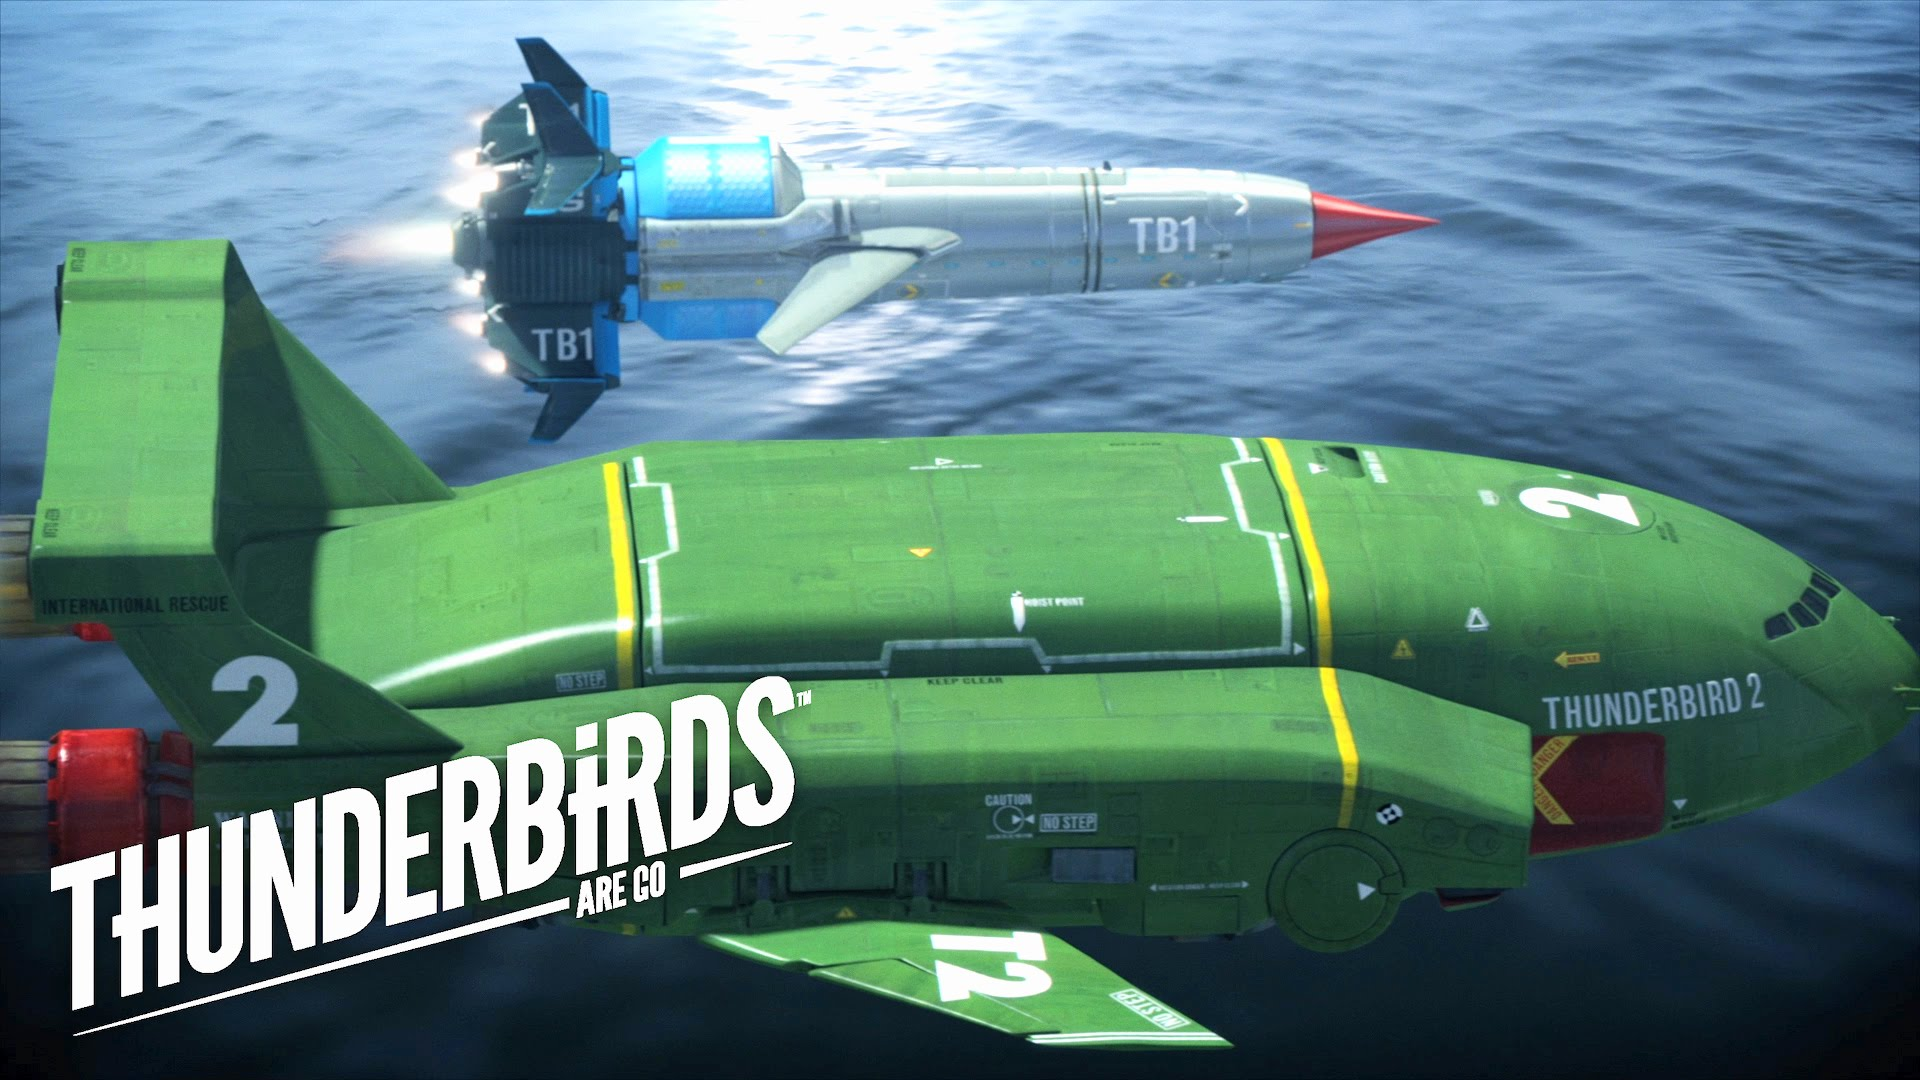 thunderbirds images wallpapers hd - photo #21